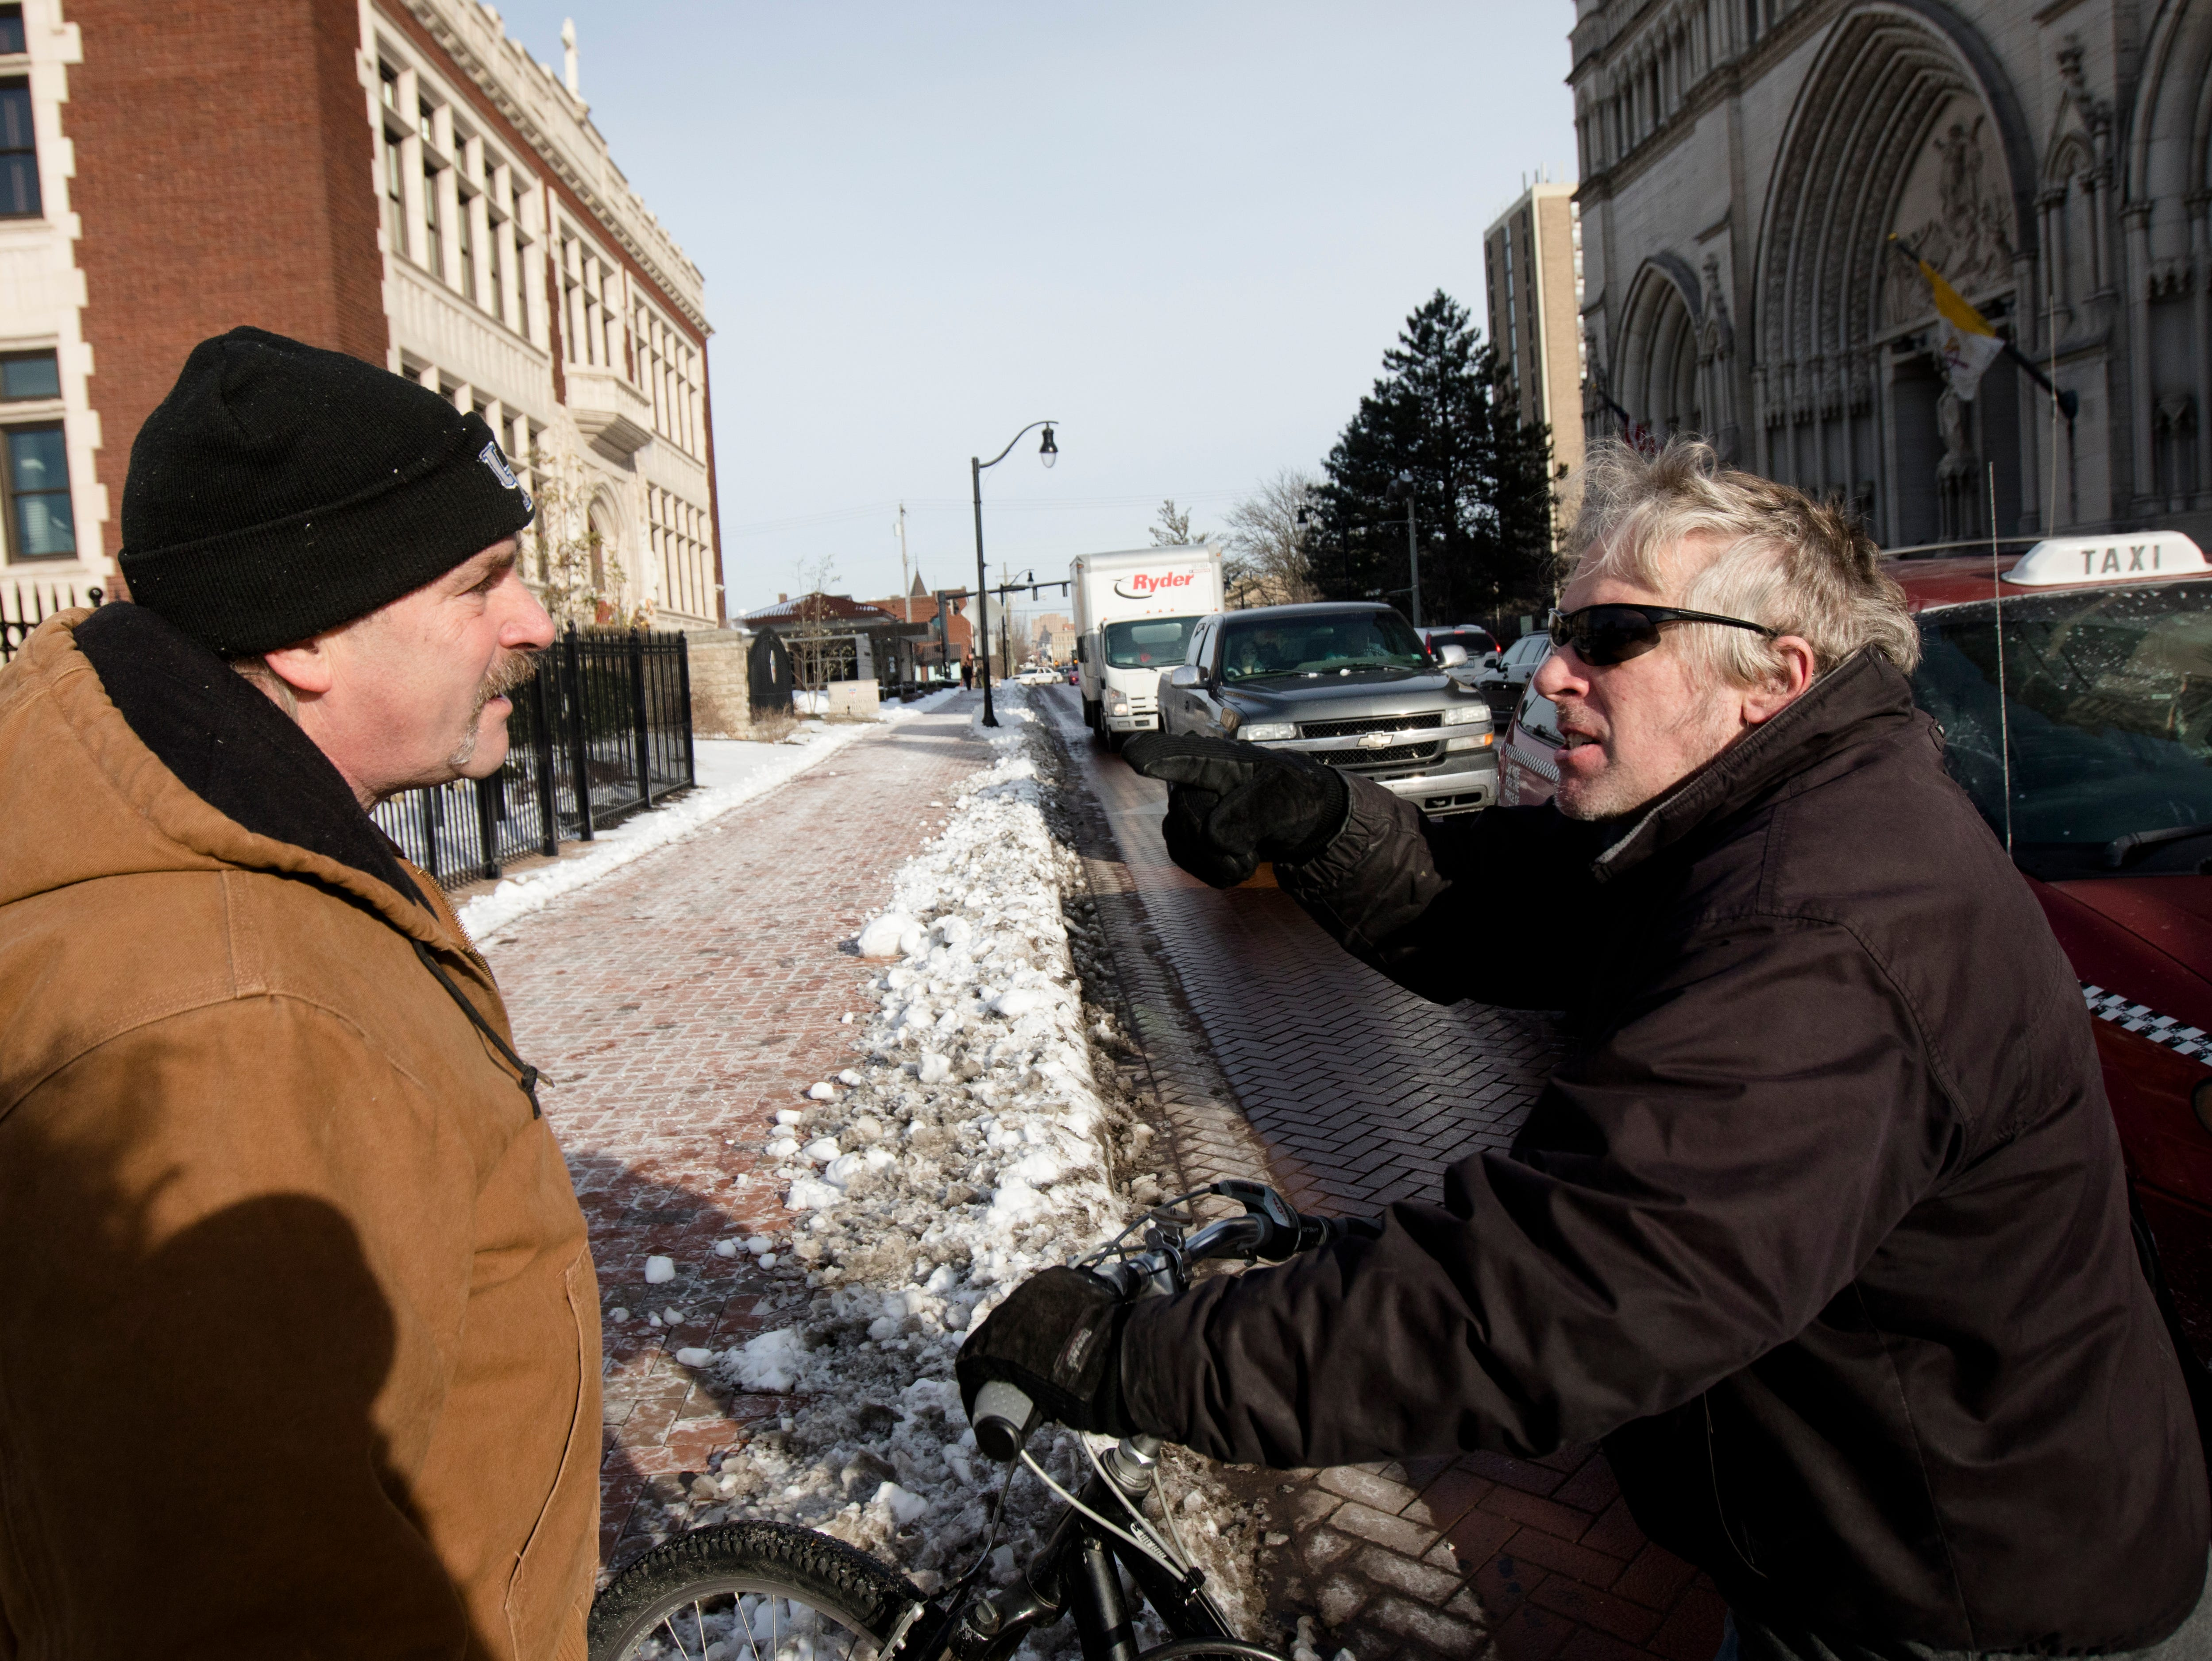 Tim Brown, right, gets into a verbal altercation with a man who declined to give his name yells back at a person on the street while preparing to hold a sign in support of Covington Catholic students and chaperones outside the Diocese of Covington building in Covington, Kentucky, on Tuesday, Jan. 22, 2019.  The protest was planned by the American Indian Movement in response to incident in Washington DC when students of Covington Catholic High School were filmed in an altercation with a Native American man.